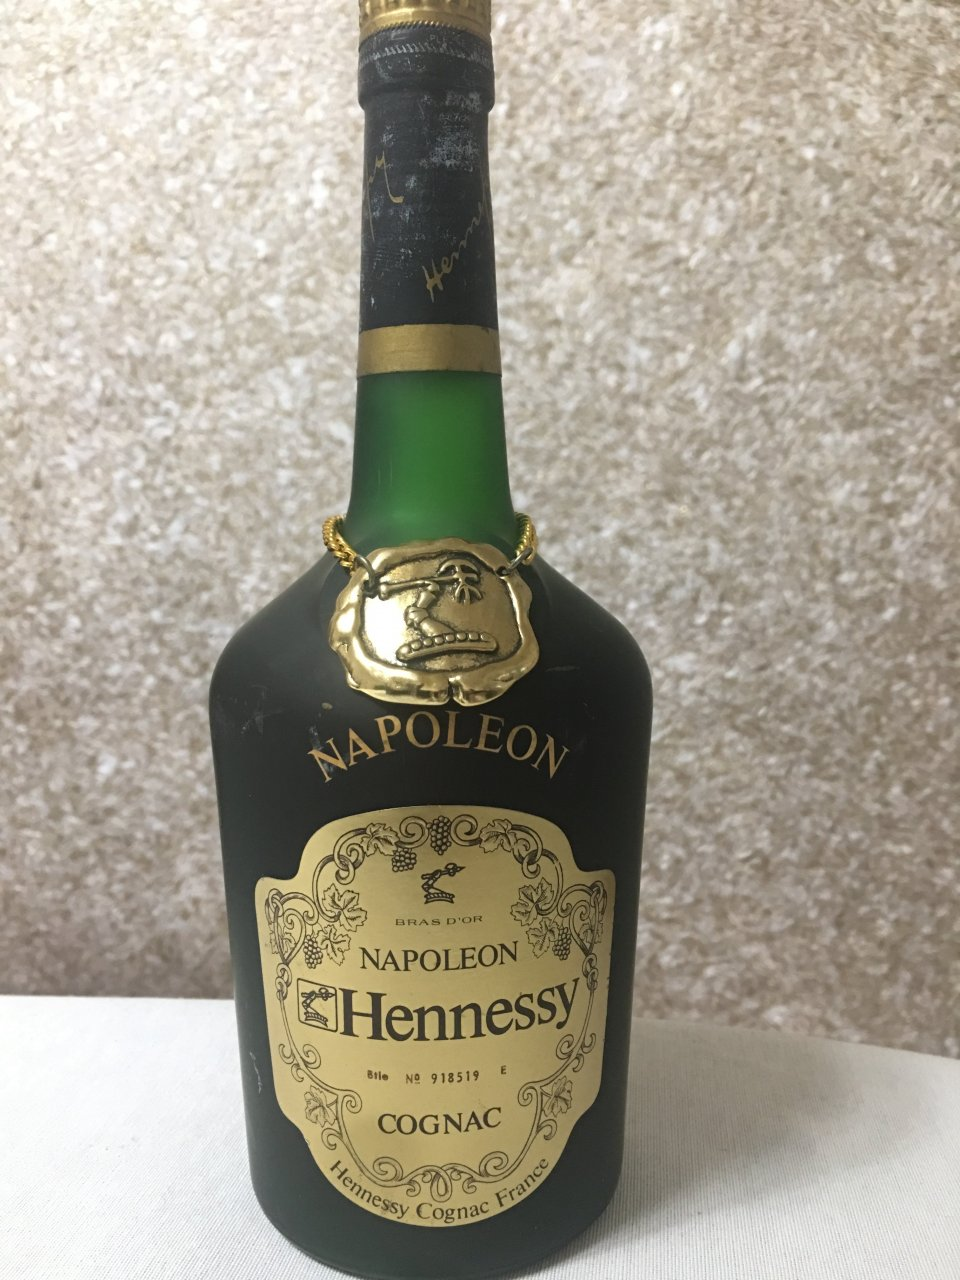 Hennessy Drinks Planet